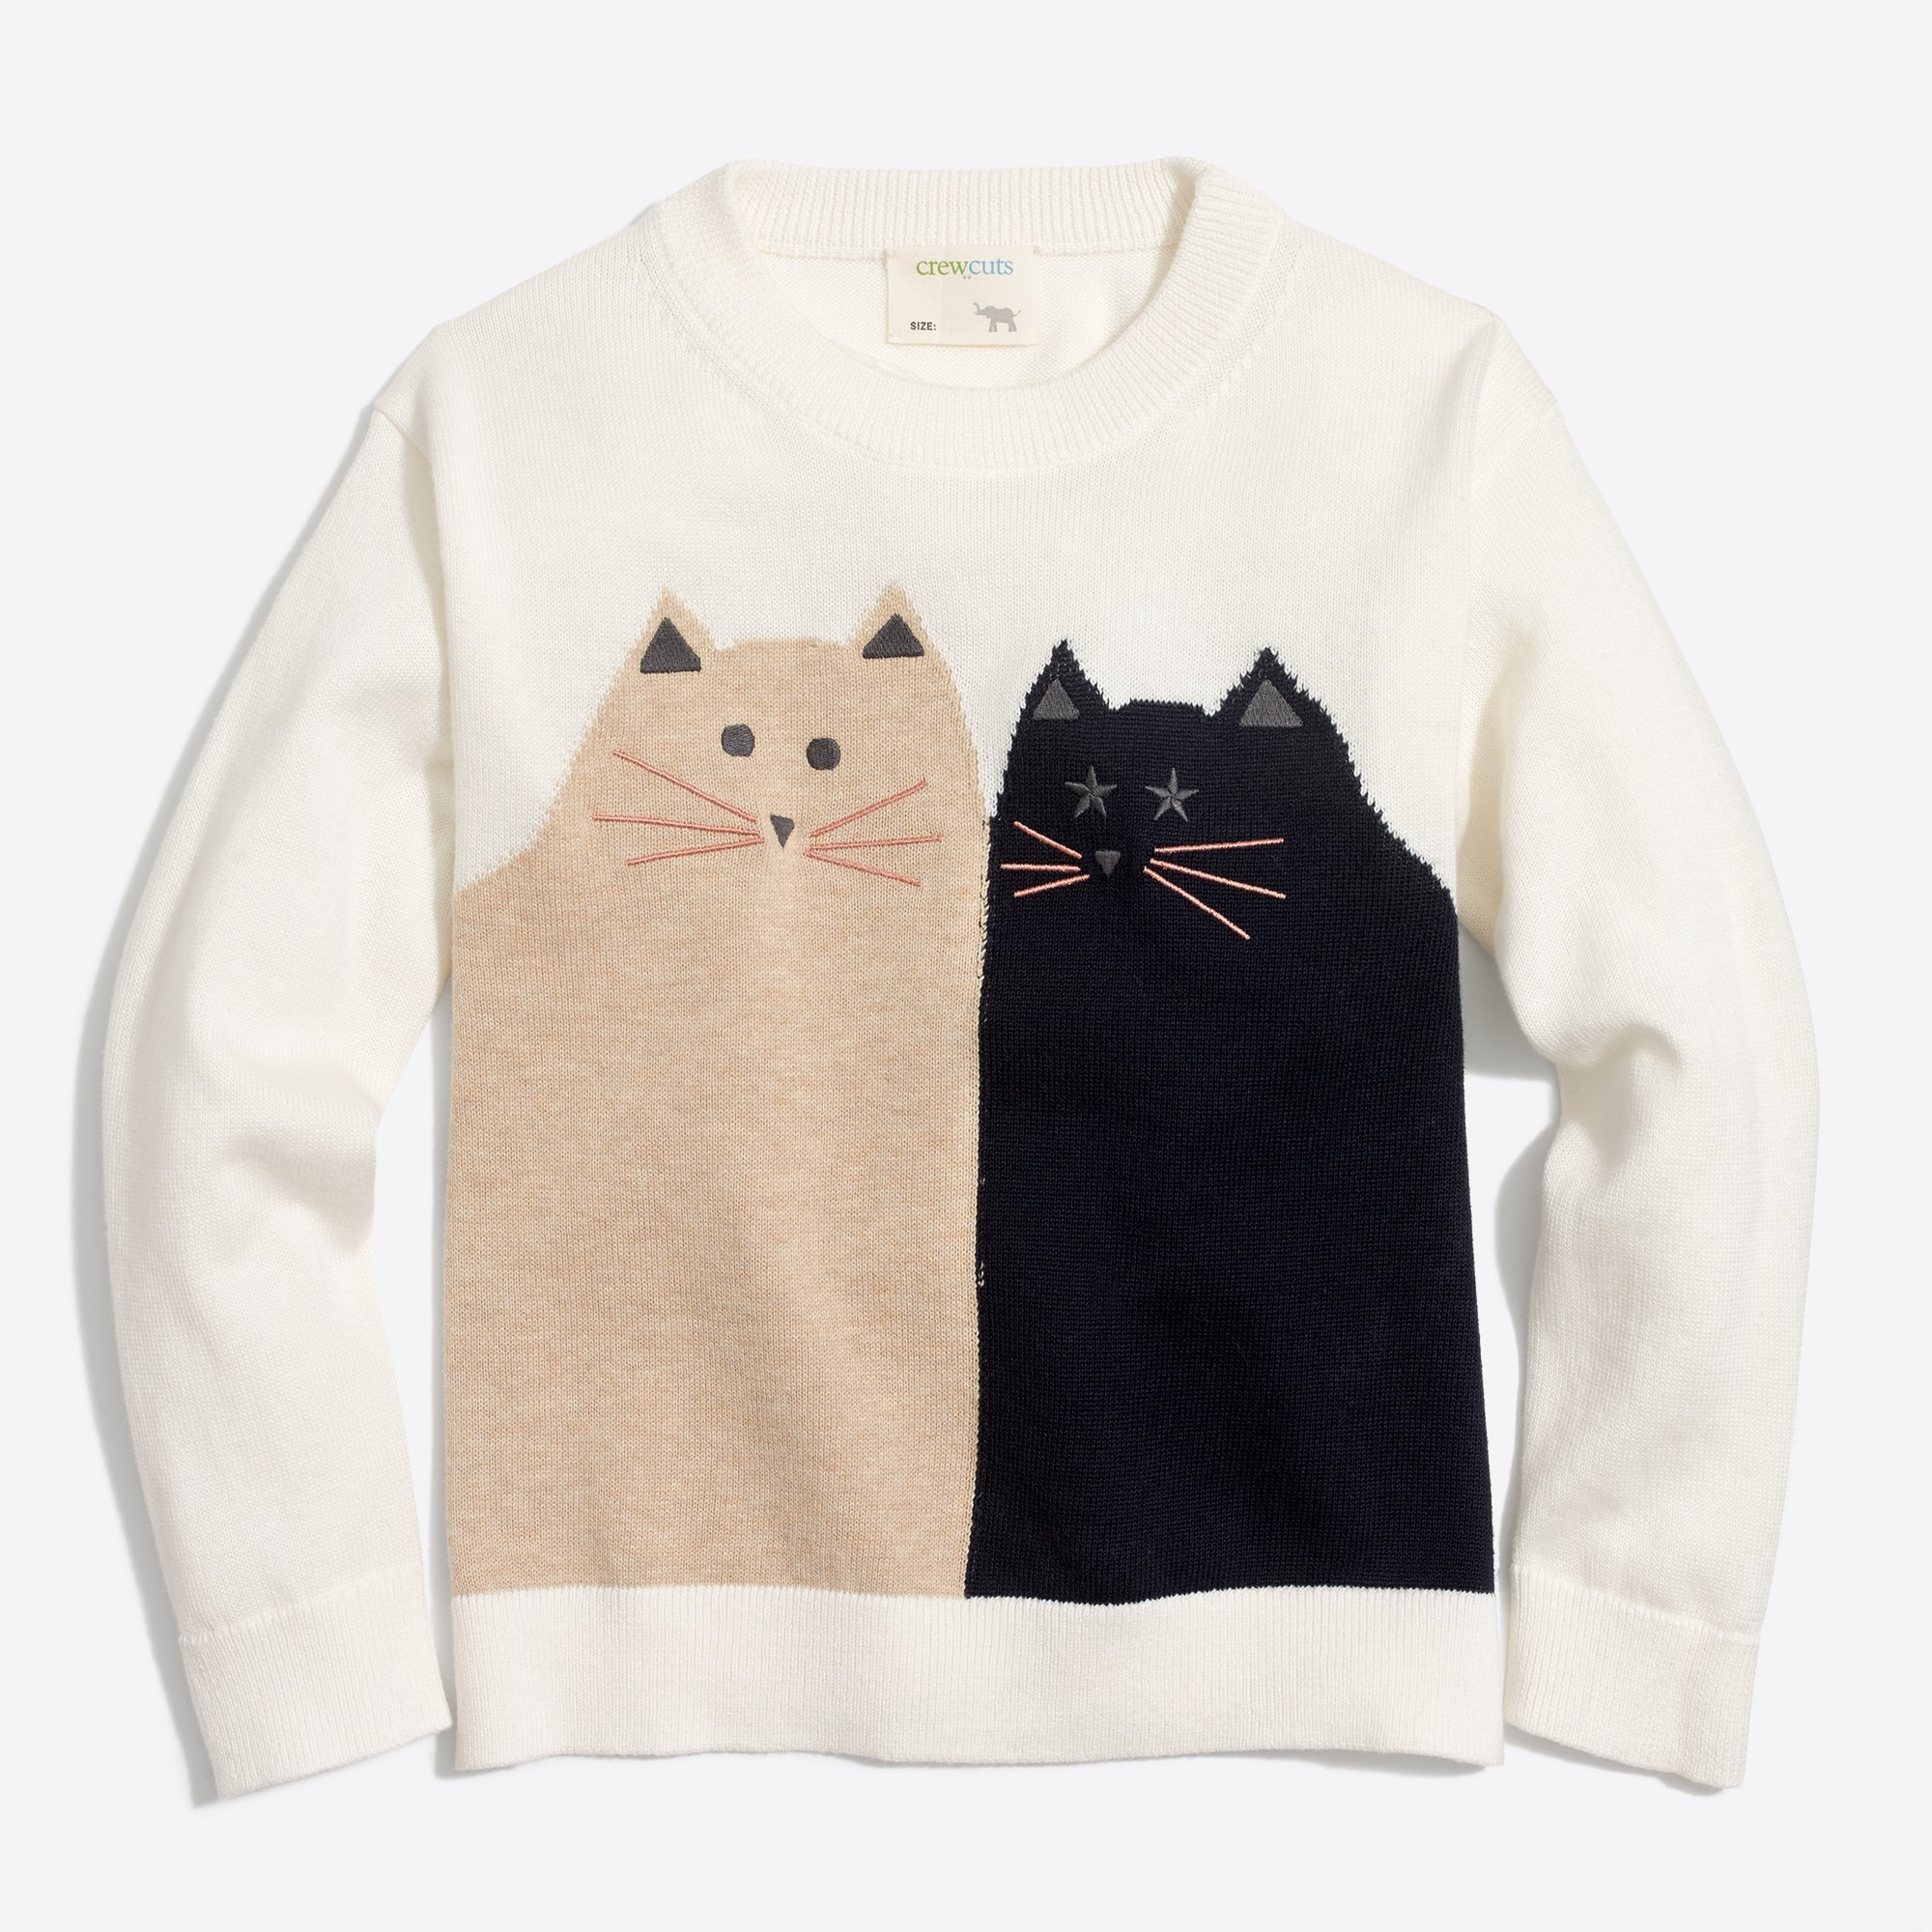 Image 1 for Girls' cat friends popover intarsia sweater